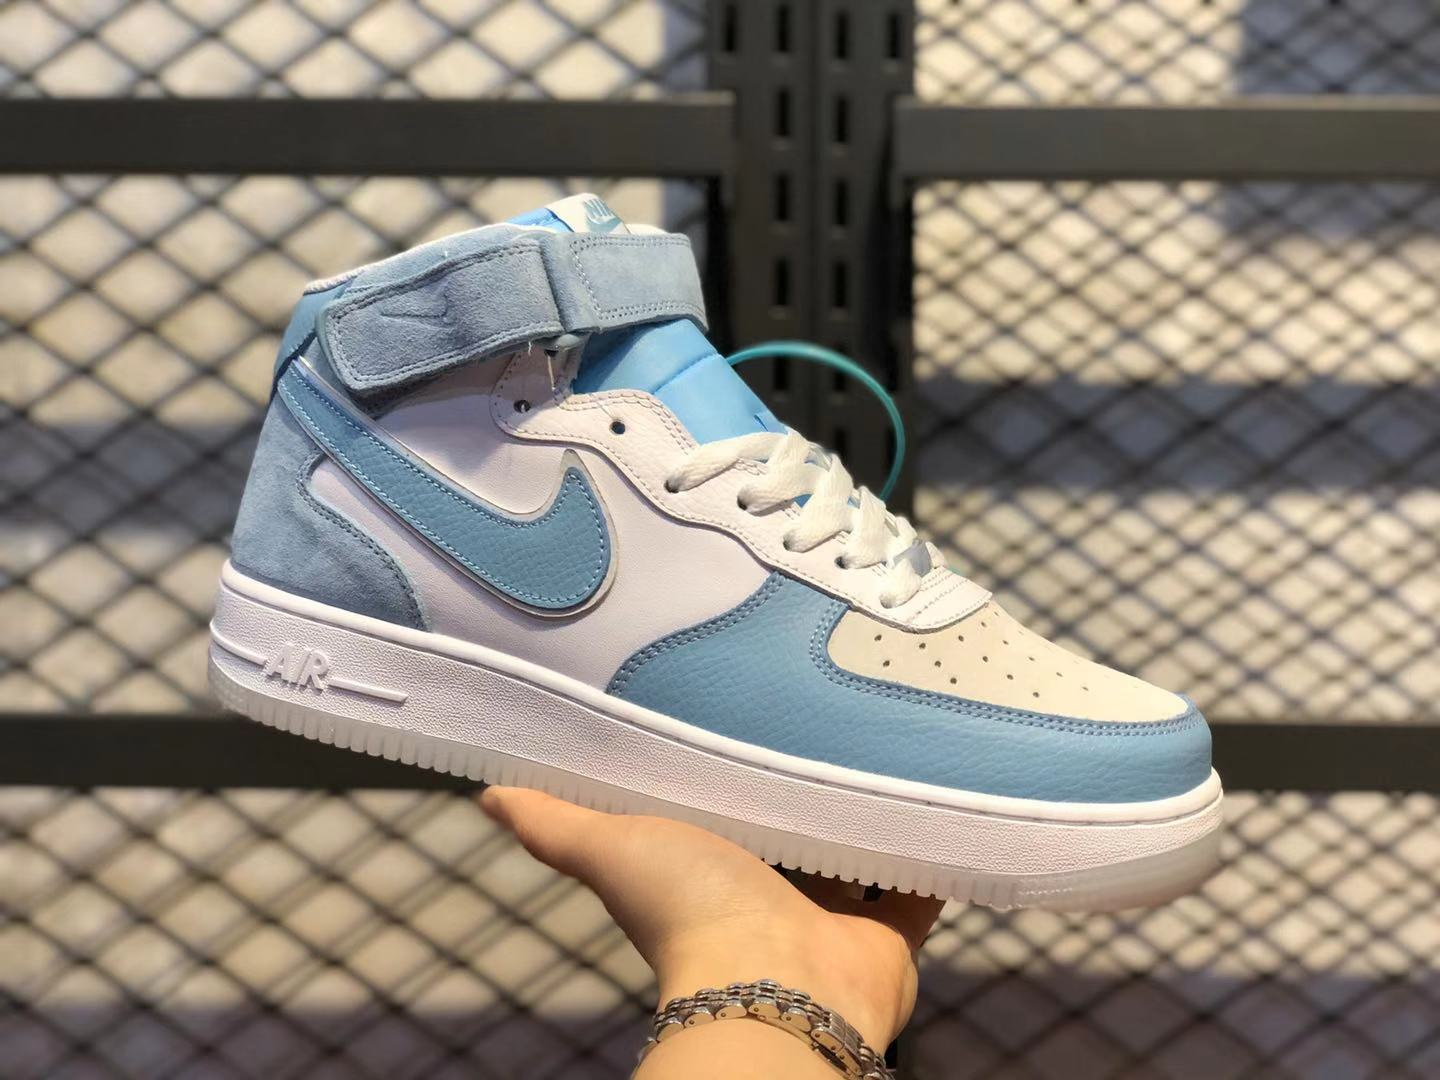 Nike Air Force 1 Low Lake Blue/White Casual Sneakers AO2425-401 Online Buy